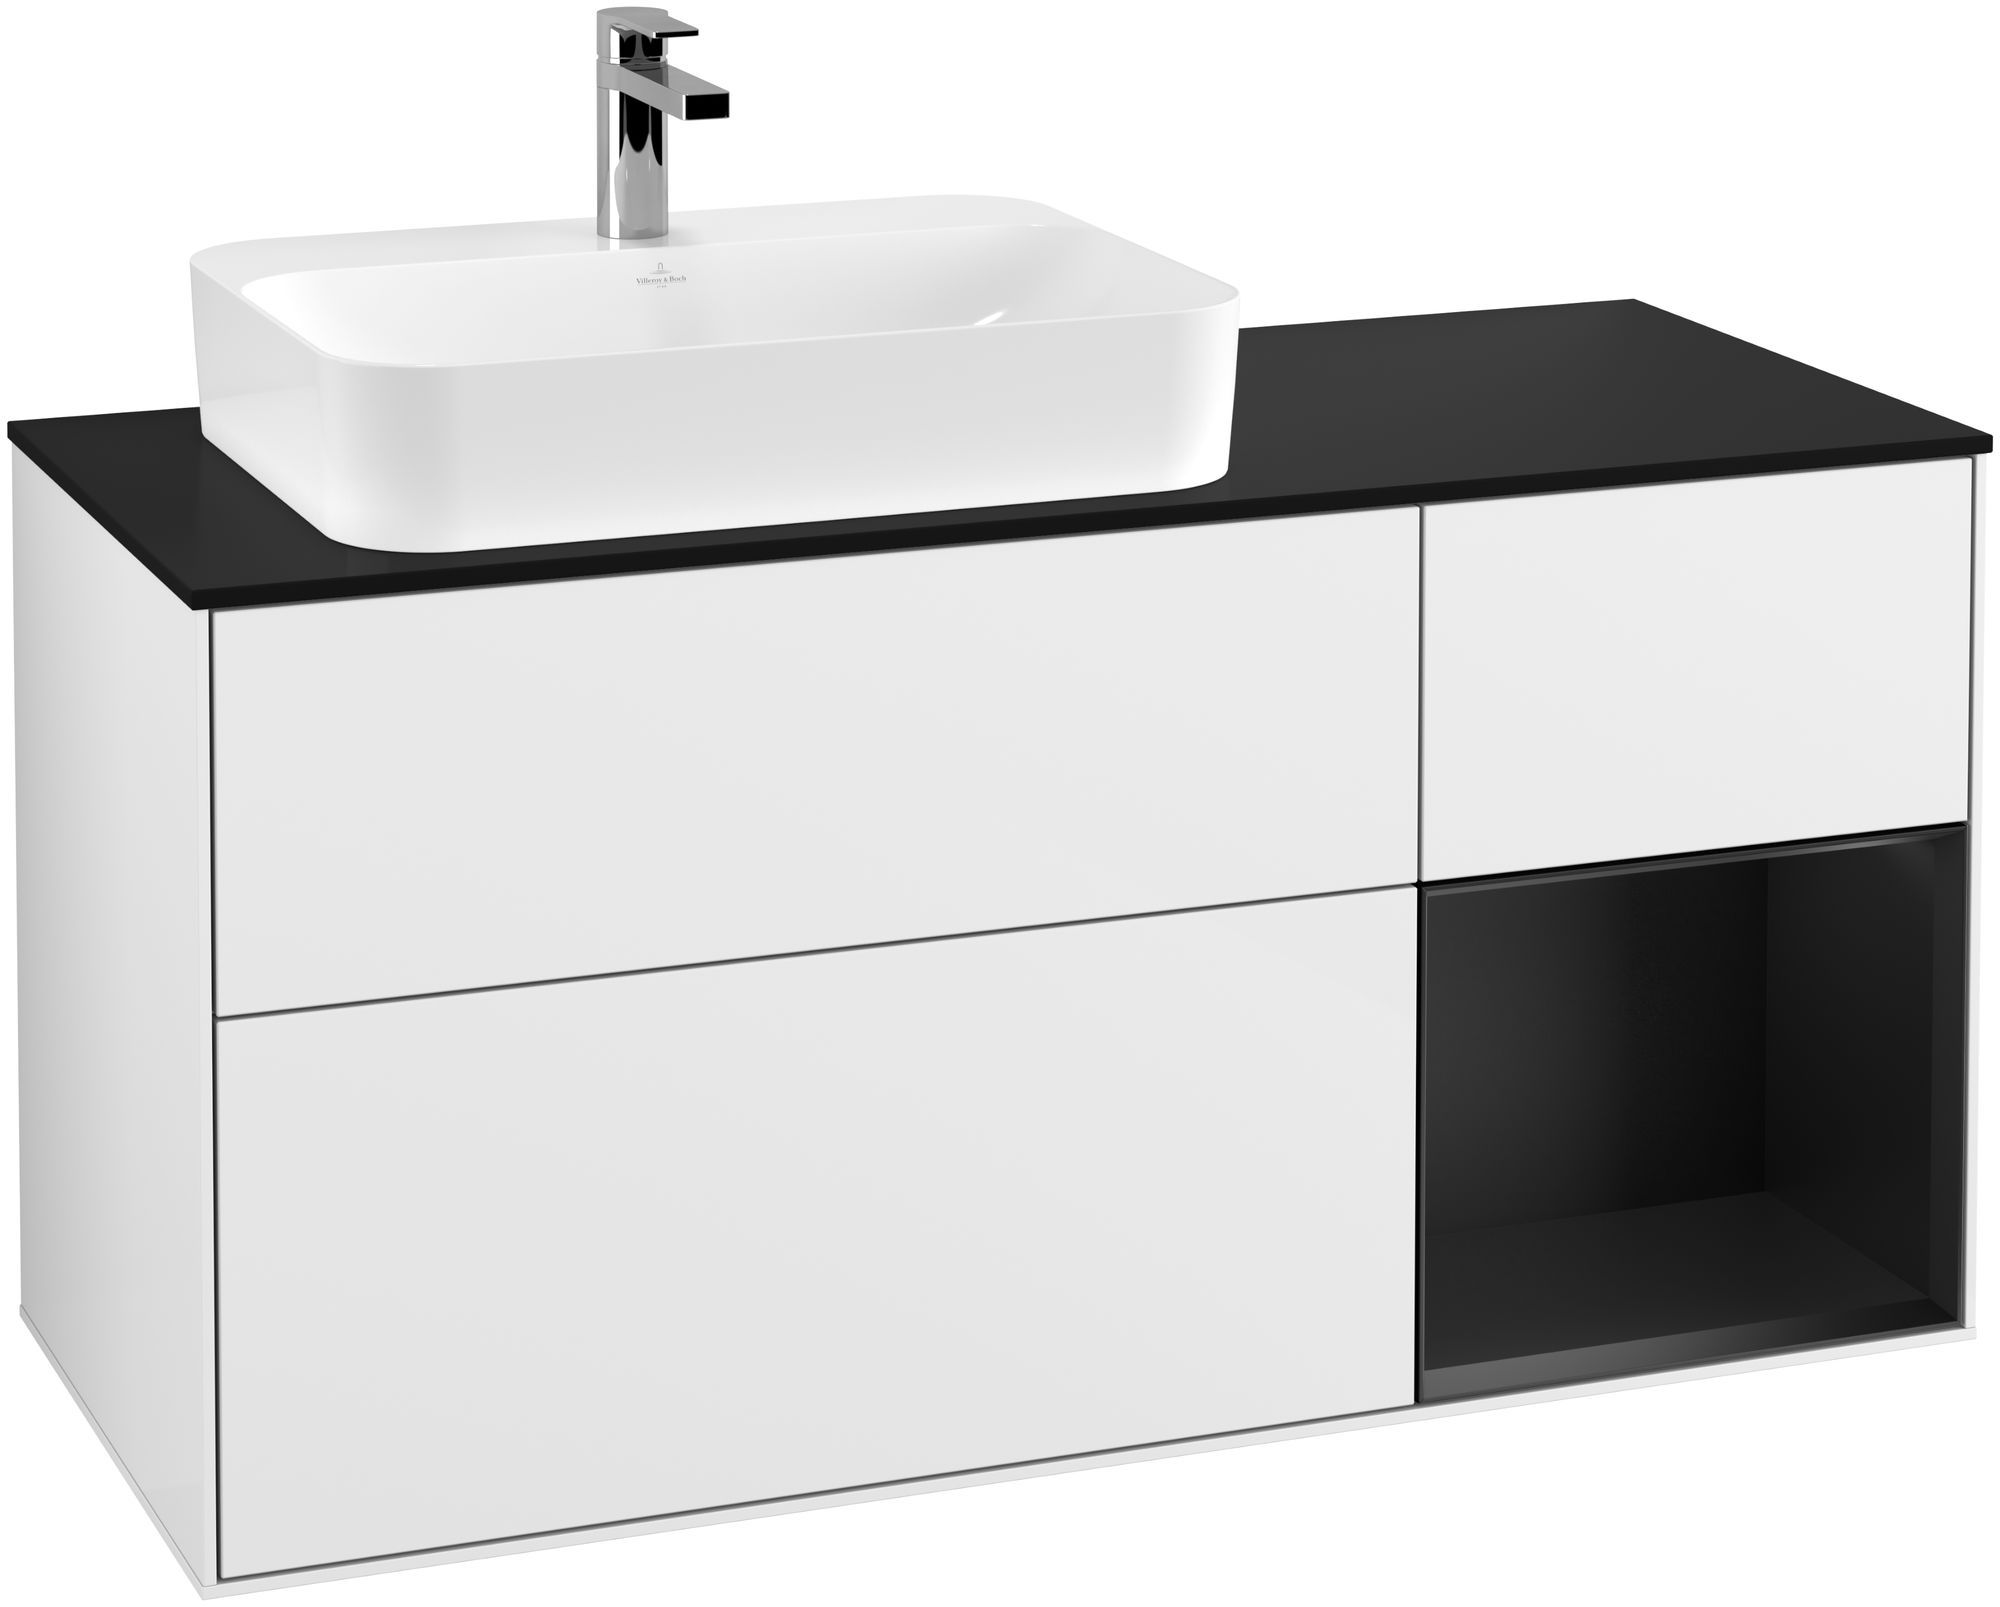 Villeroy & Boch Finion G40 Waschtischunterschrank mit Regalelement 3 Auszüge Waschtisch links LED-Beleuchtung B:120xH:60,3xT:50,1cm Front, Korpus: Glossy White Lack, Regal: Black Matt Lacquer, Glasplatte: Black Matt G402PDGF